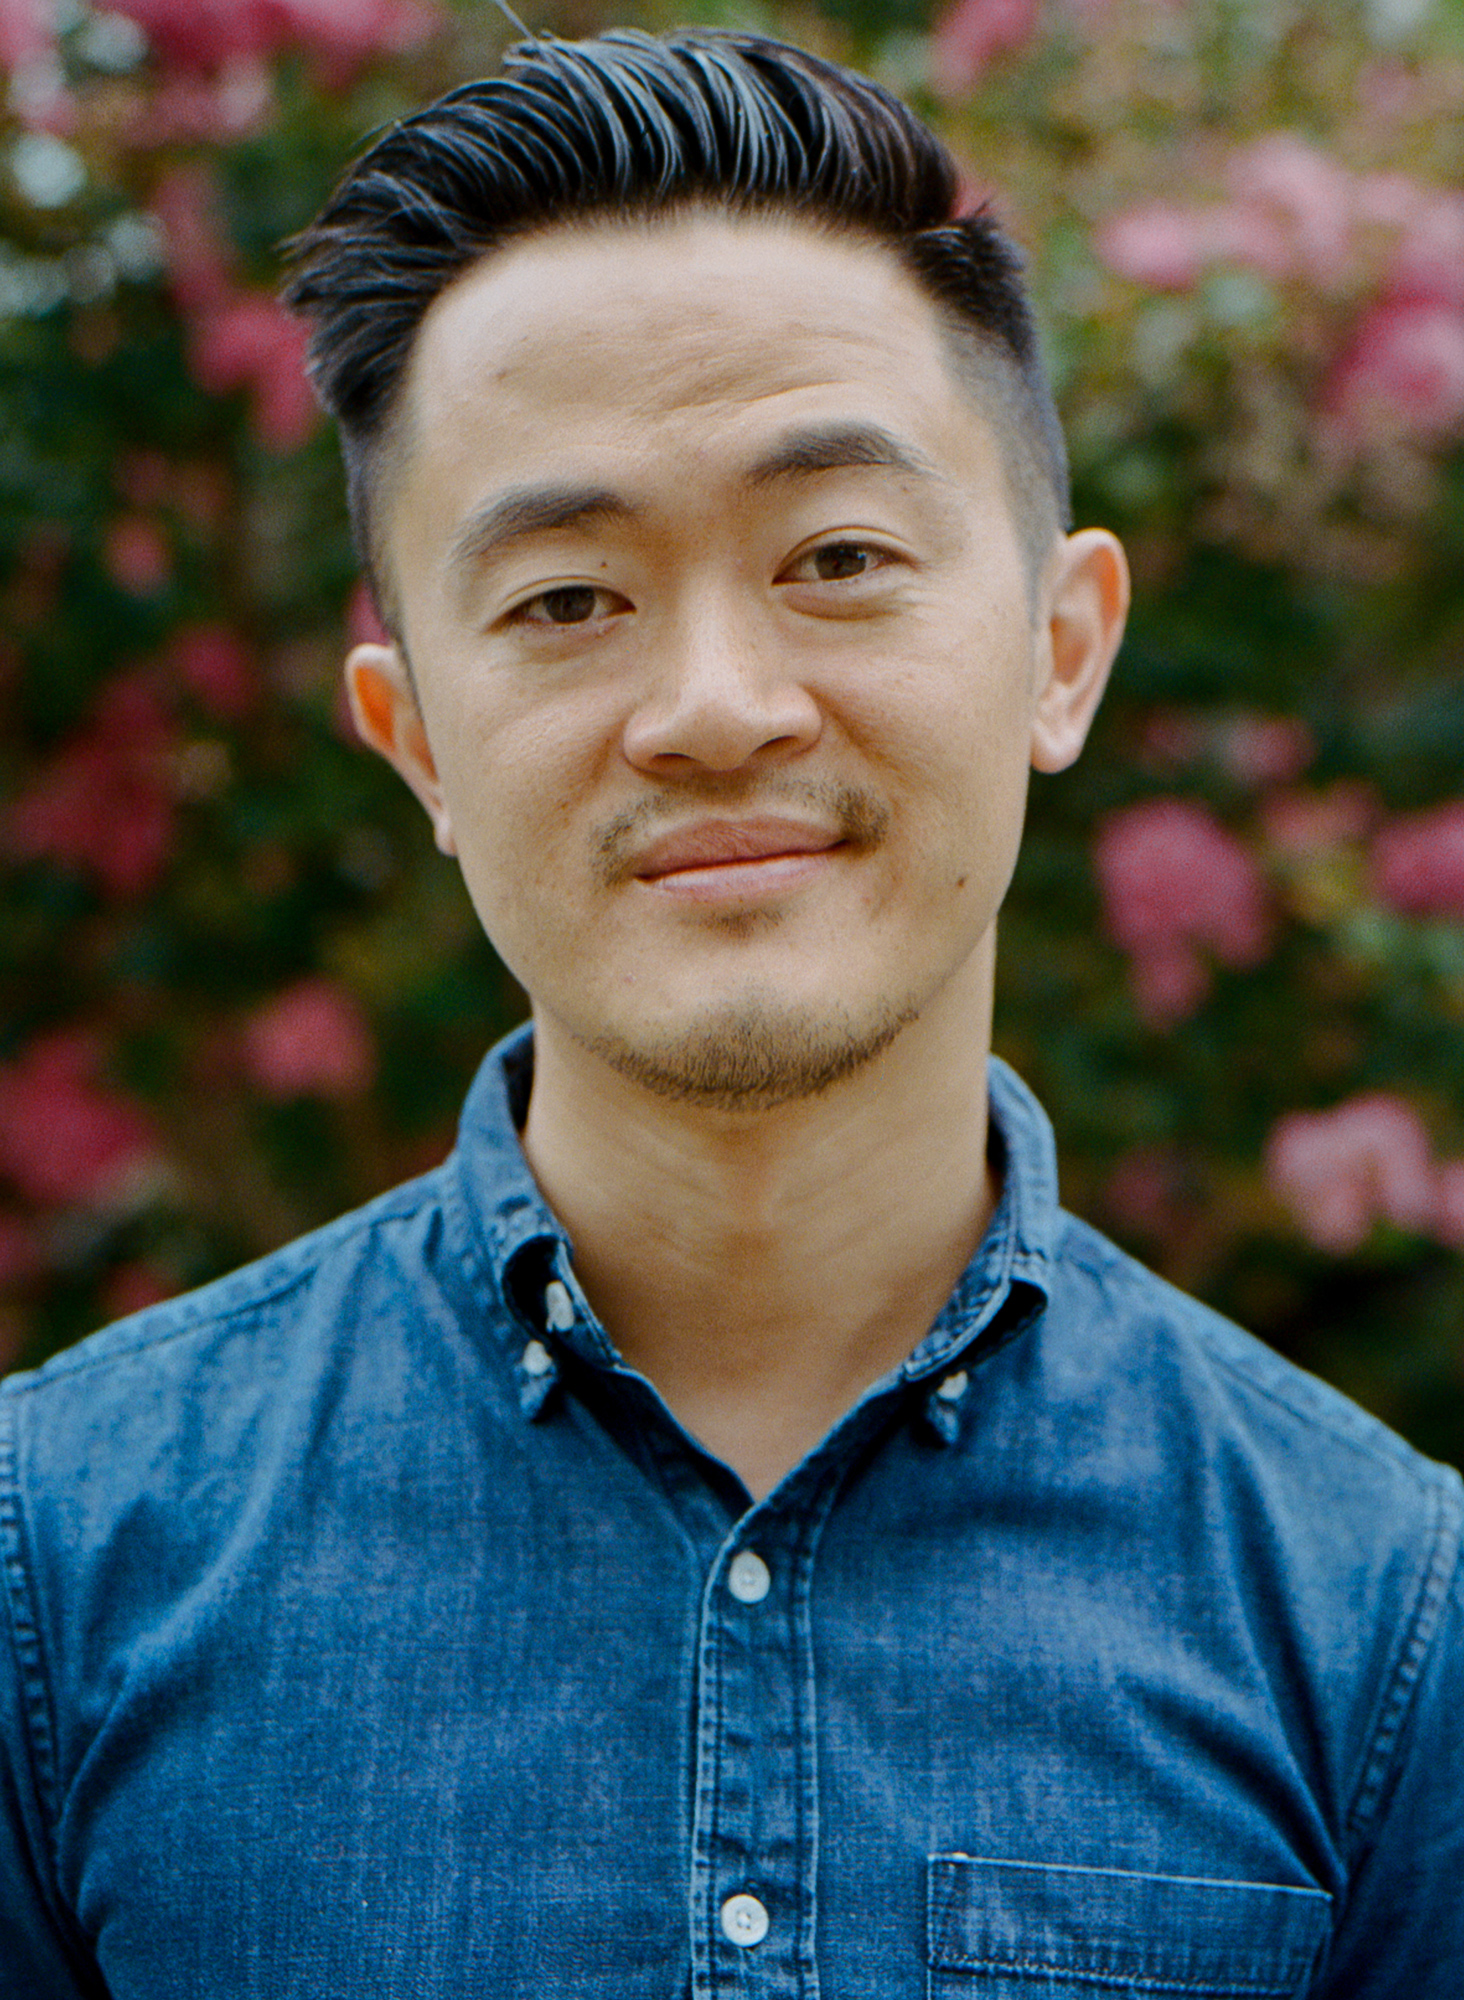 Benjamin Law: a prominent Australian author, journalist and presenter portrait by Aaron VIII